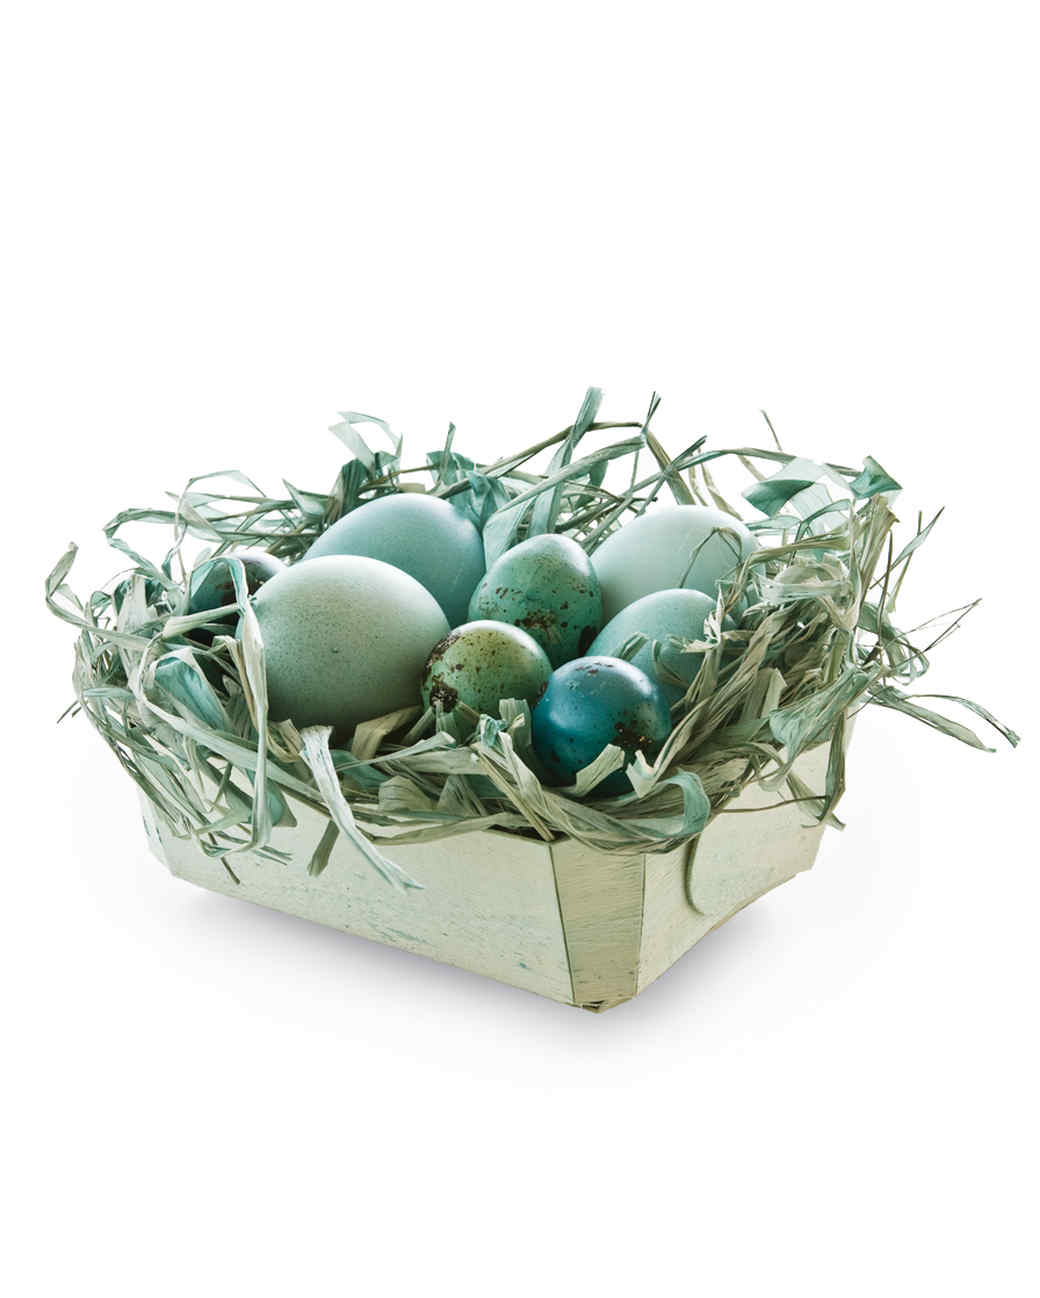 Dyed easter baskets martha stewart dyed easter baskets negle Images